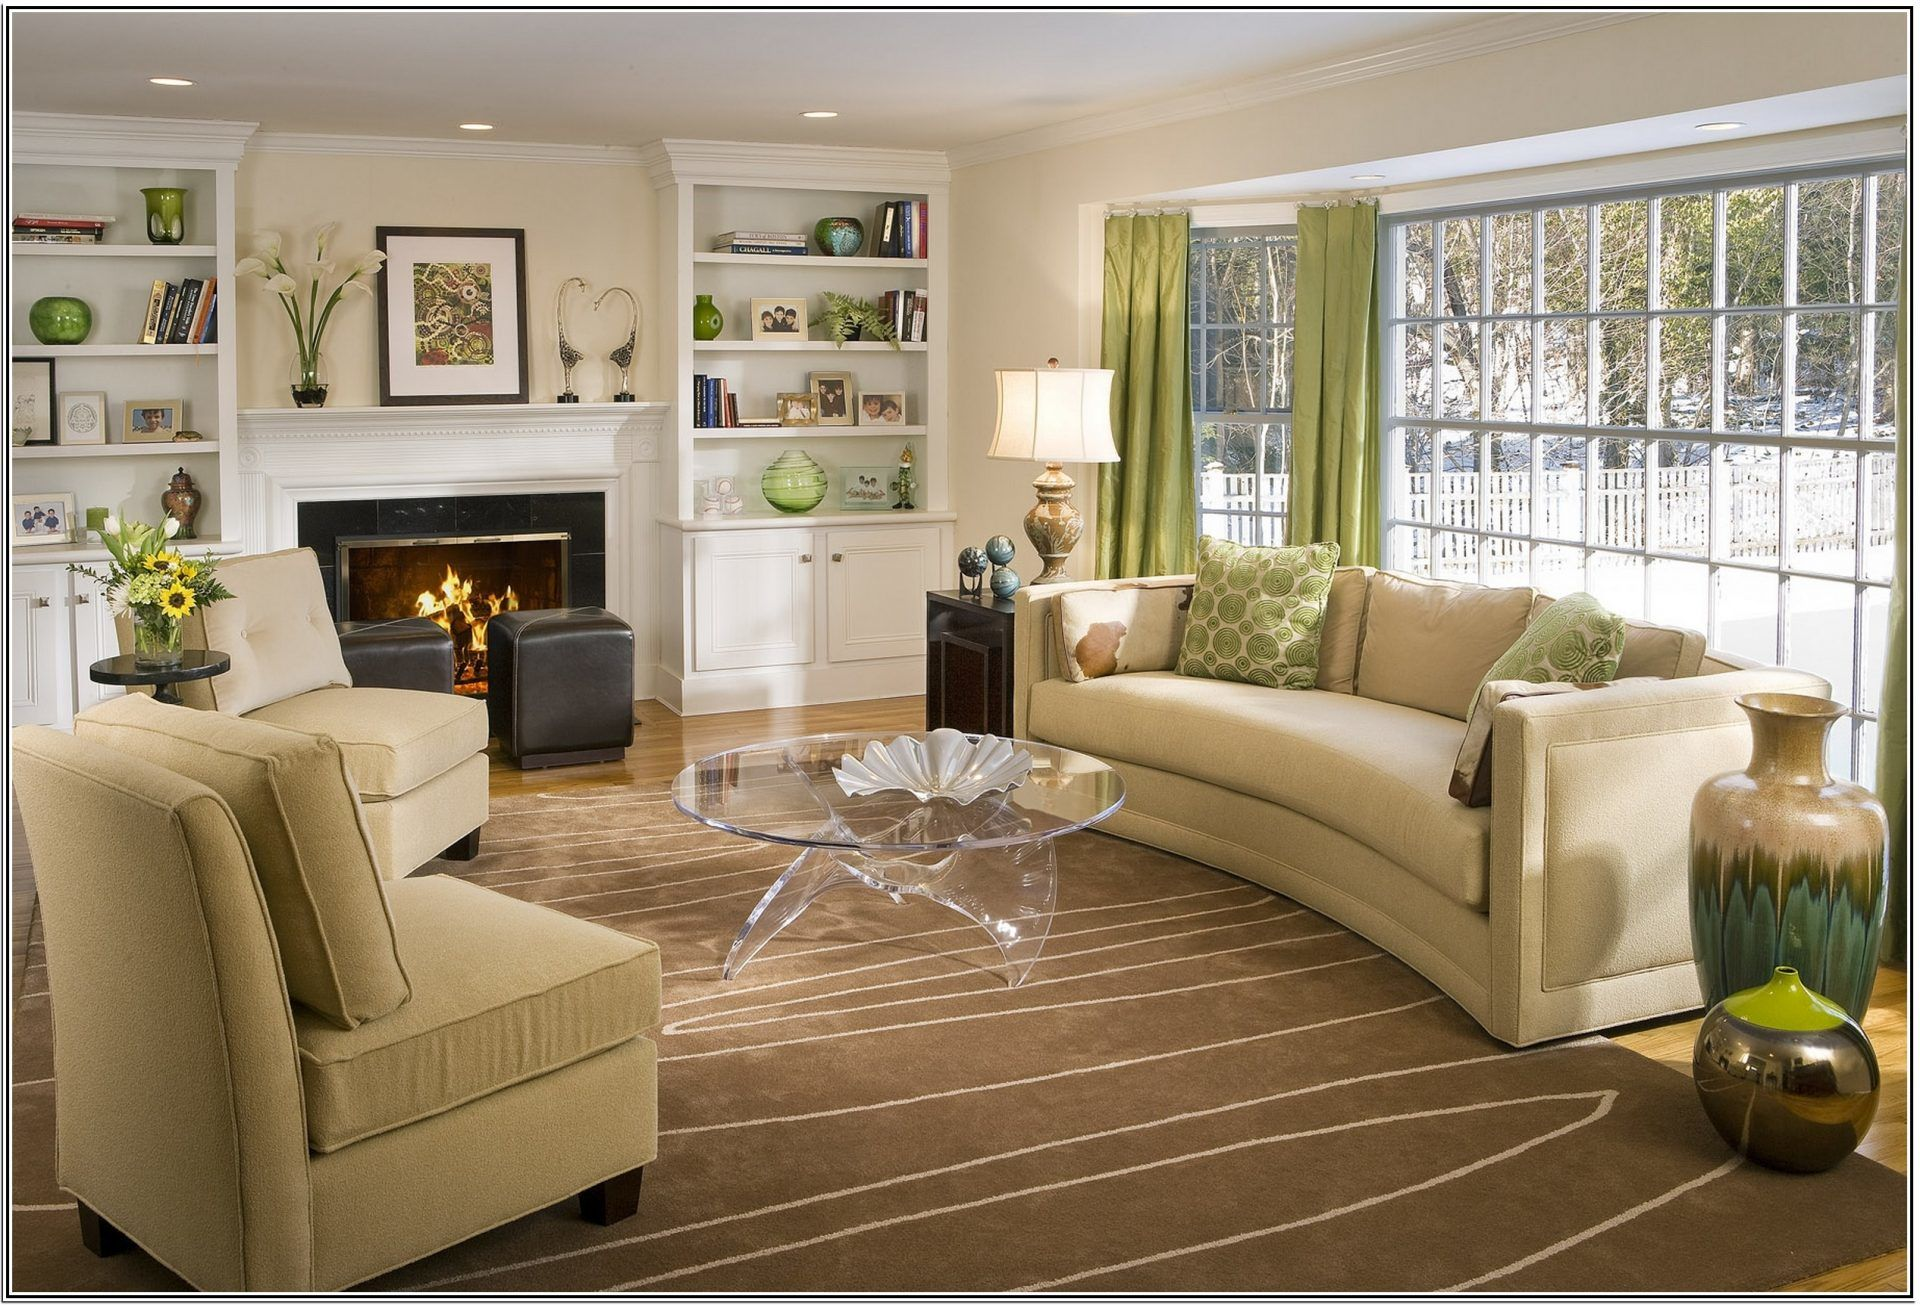 sensational couch and sofa set ideas-Best Of Couch and sofa Set Image